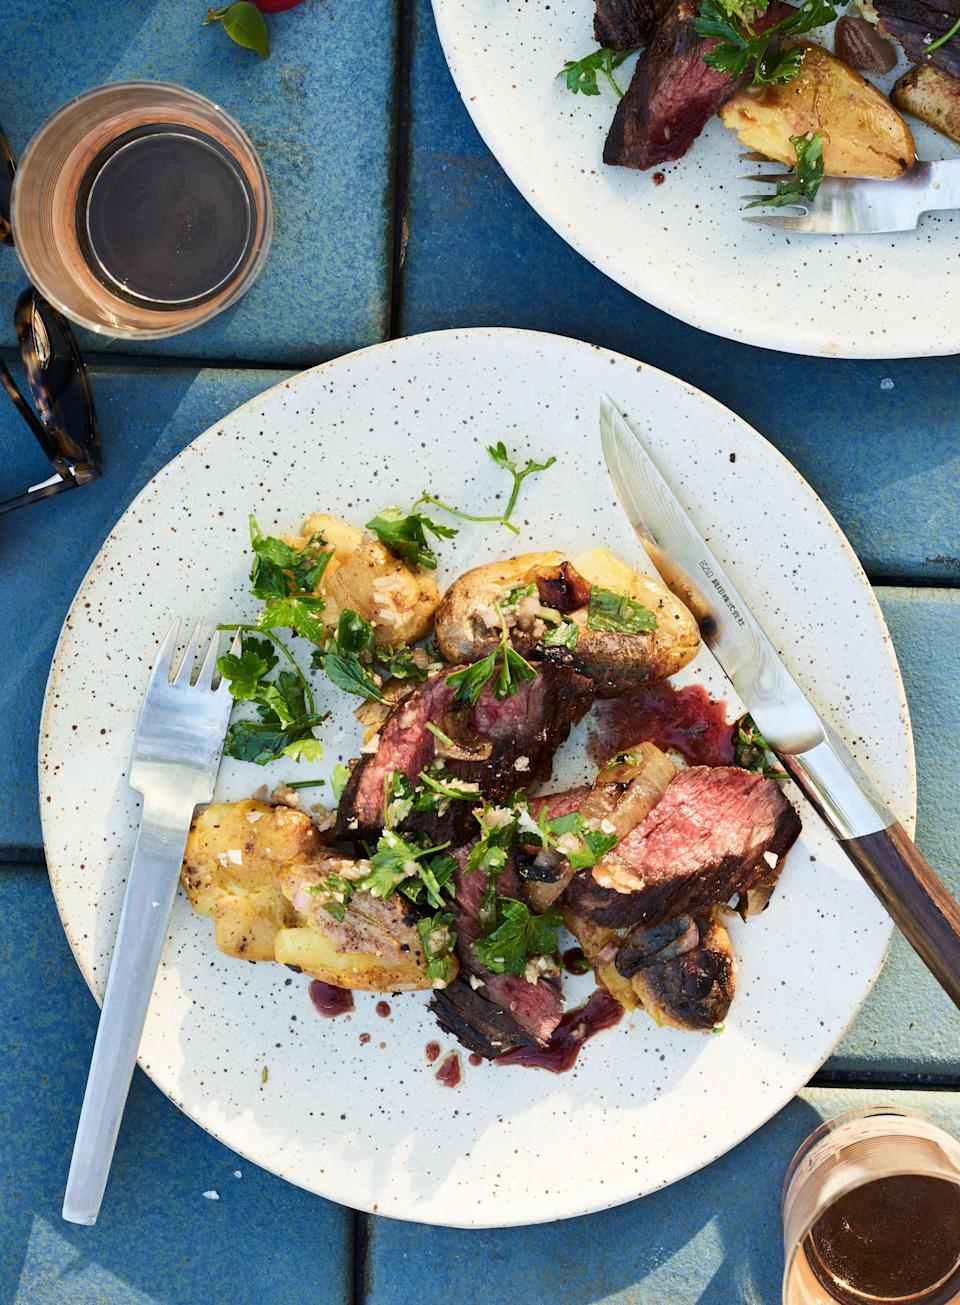 """Board dressing: take all of those flavorful juices that accumulate when the meat rests off your cutting board and pour them back over the meat, where they belong. <a href=""""https://www.bonappetit.com/recipe/skirt-steak-and-smashed-potatoes-with-herb-dressing?mbid=synd_yahoo_rss"""" rel=""""nofollow noopener"""" target=""""_blank"""" data-ylk=""""slk:See recipe."""" class=""""link rapid-noclick-resp"""">See recipe.</a>"""